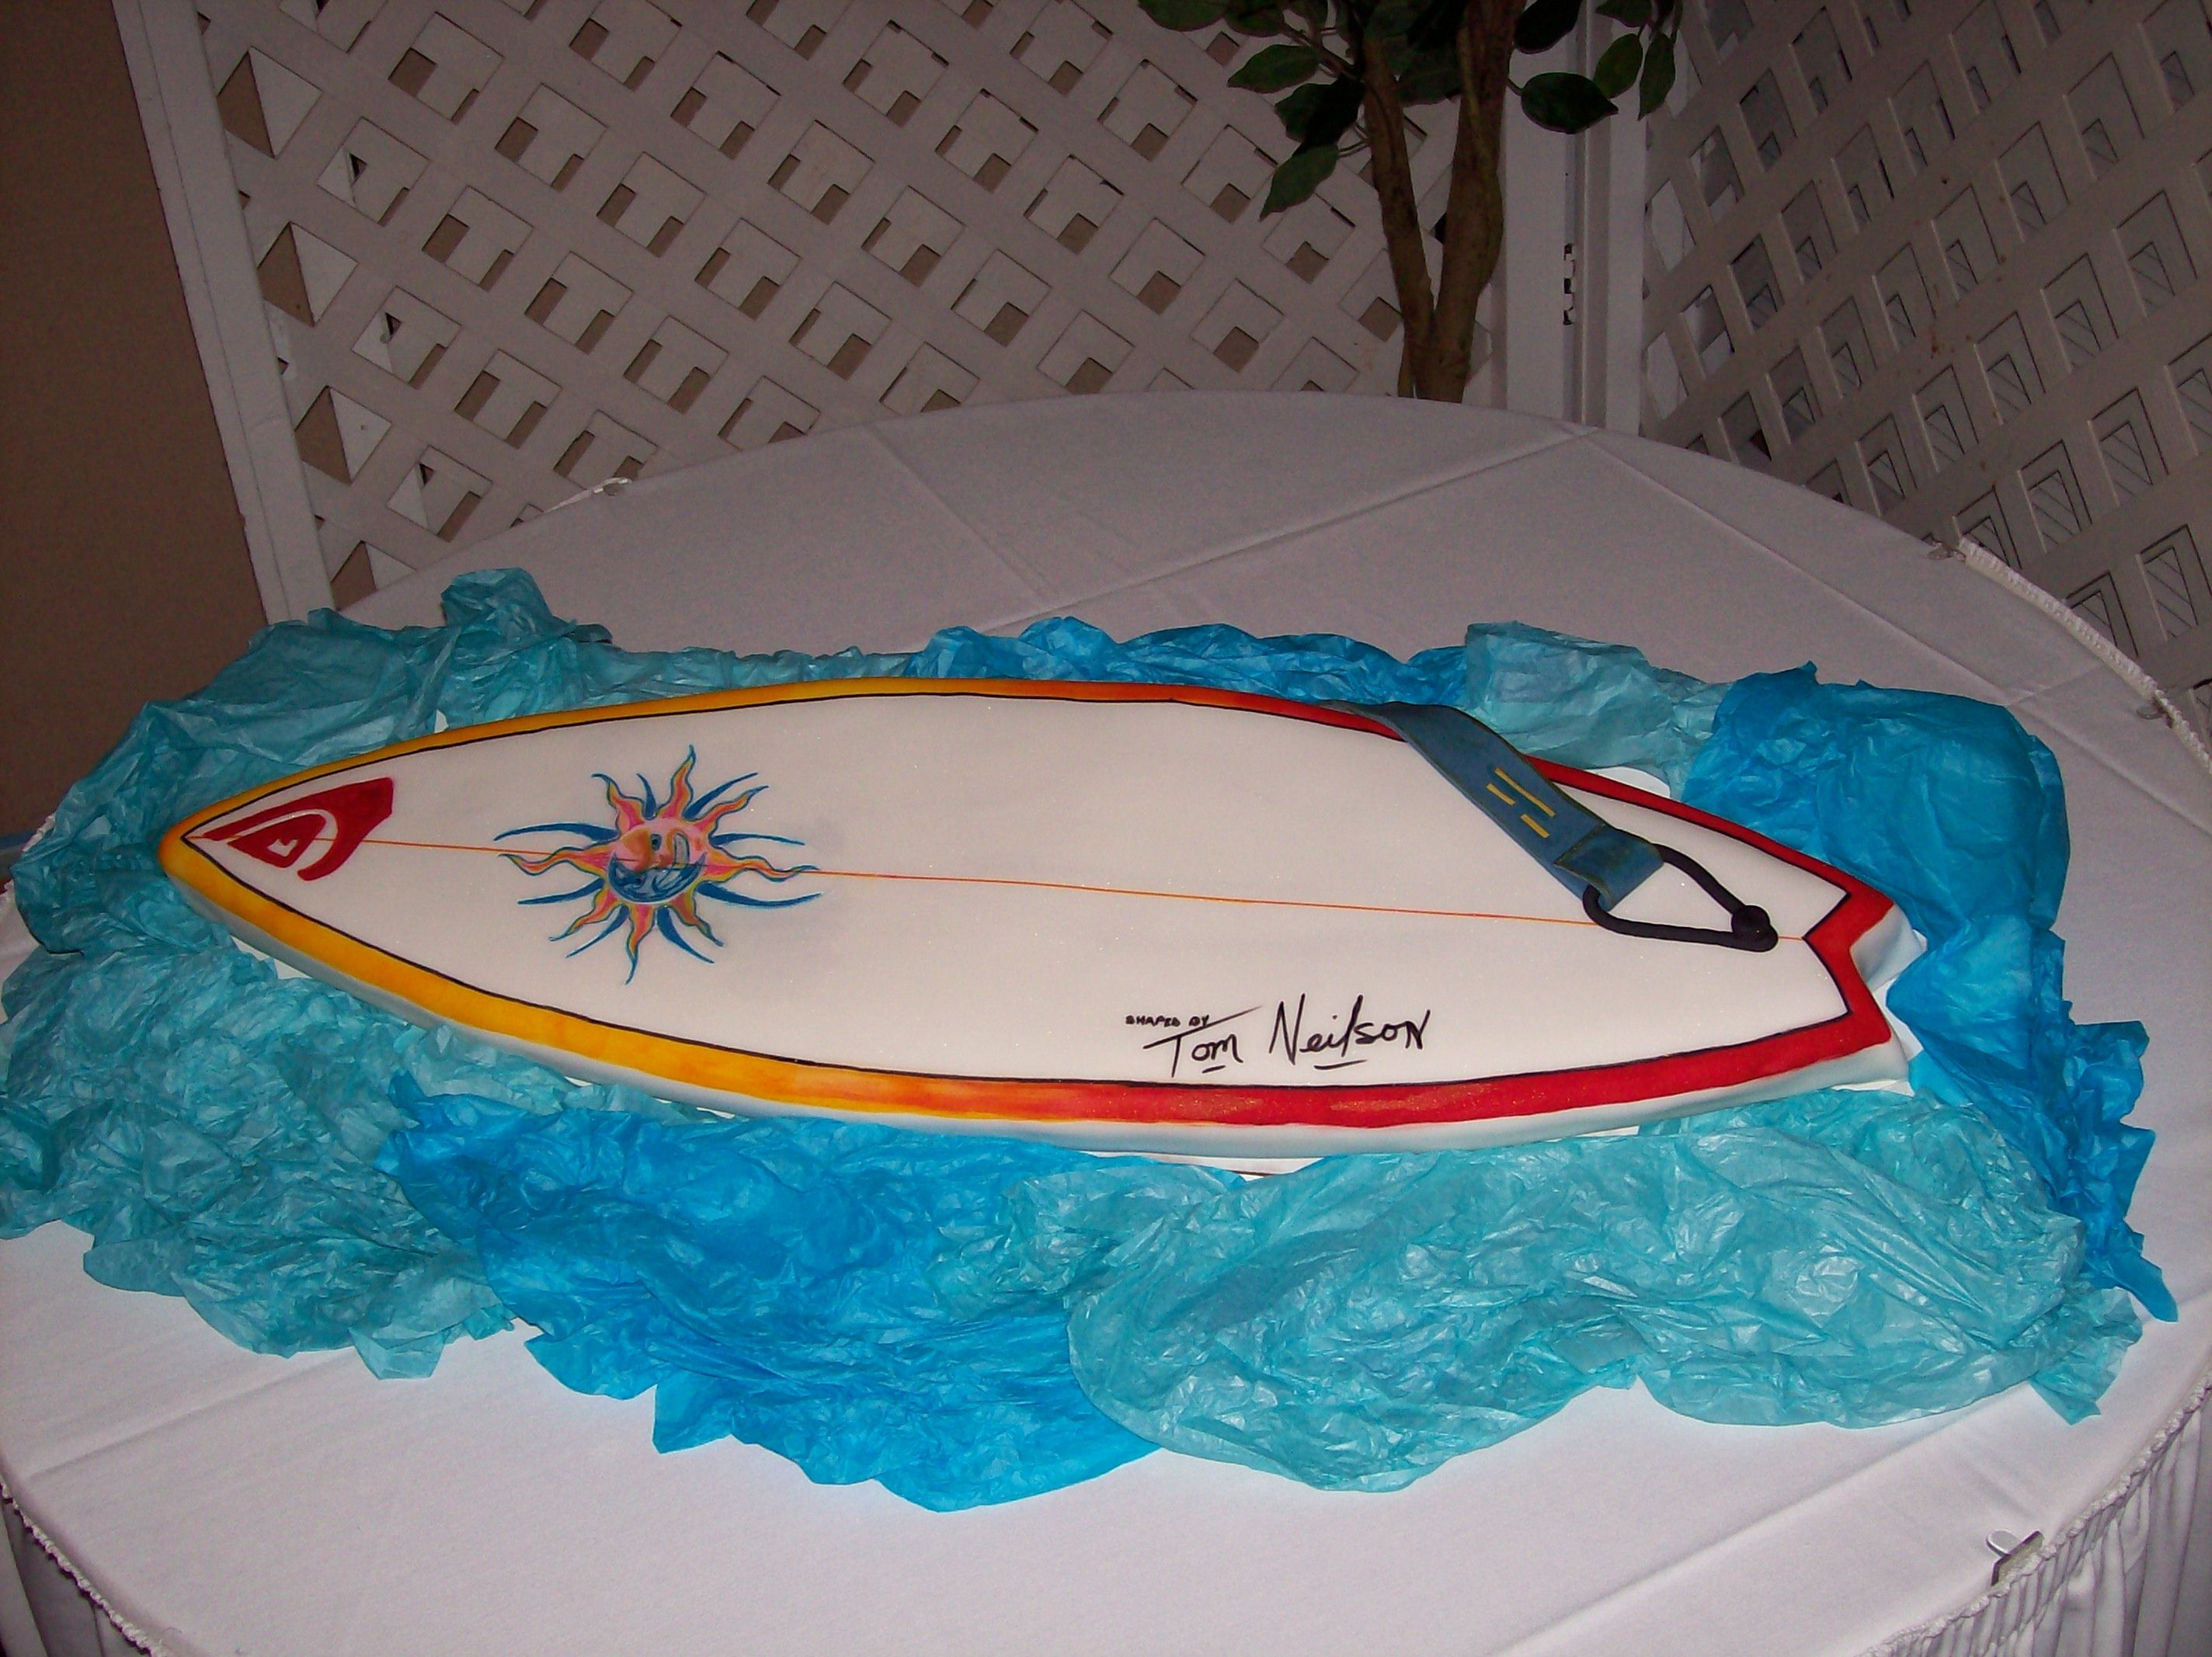 Sensational Surfboard Cake With Images Surfboard Cake Surf Cake Surf Personalised Birthday Cards Petedlily Jamesorg